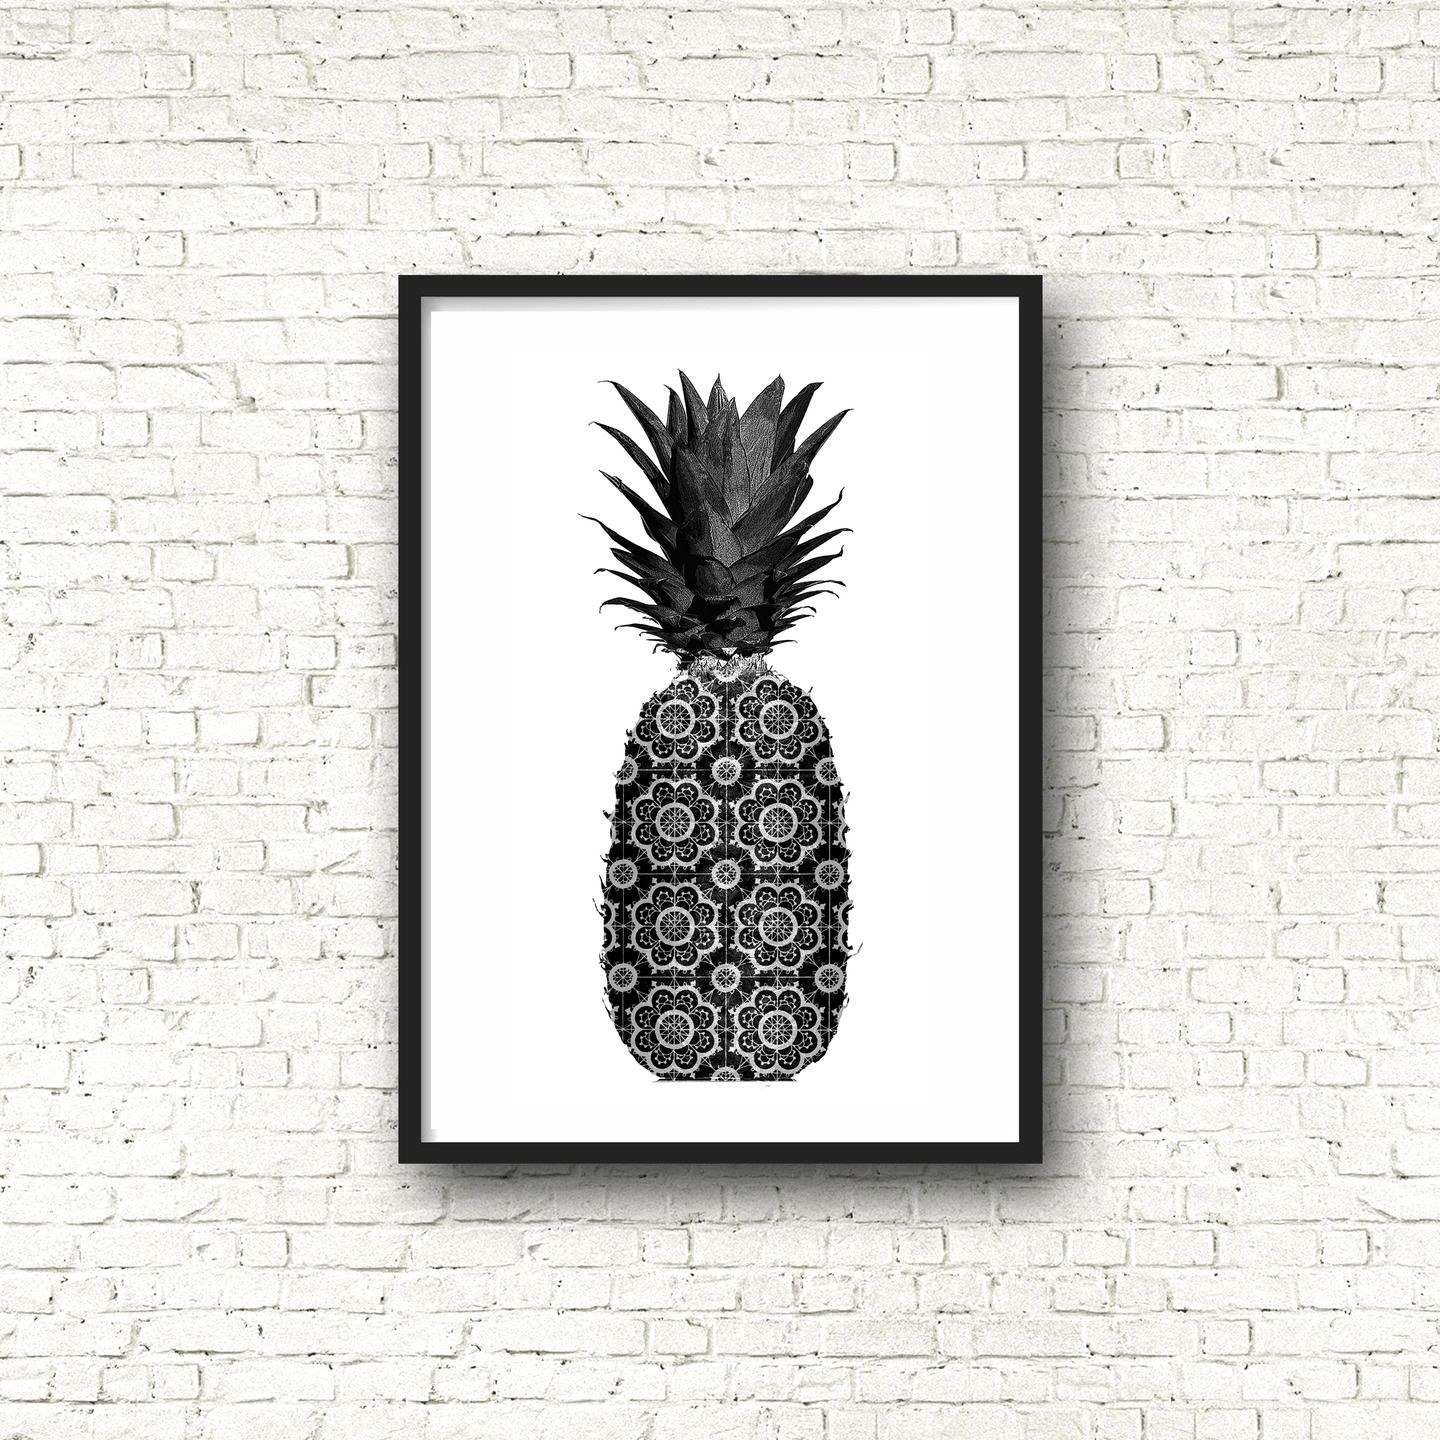 affiche poster noir et blanc graphique ananas format a4 deco pinterest graphiques. Black Bedroom Furniture Sets. Home Design Ideas